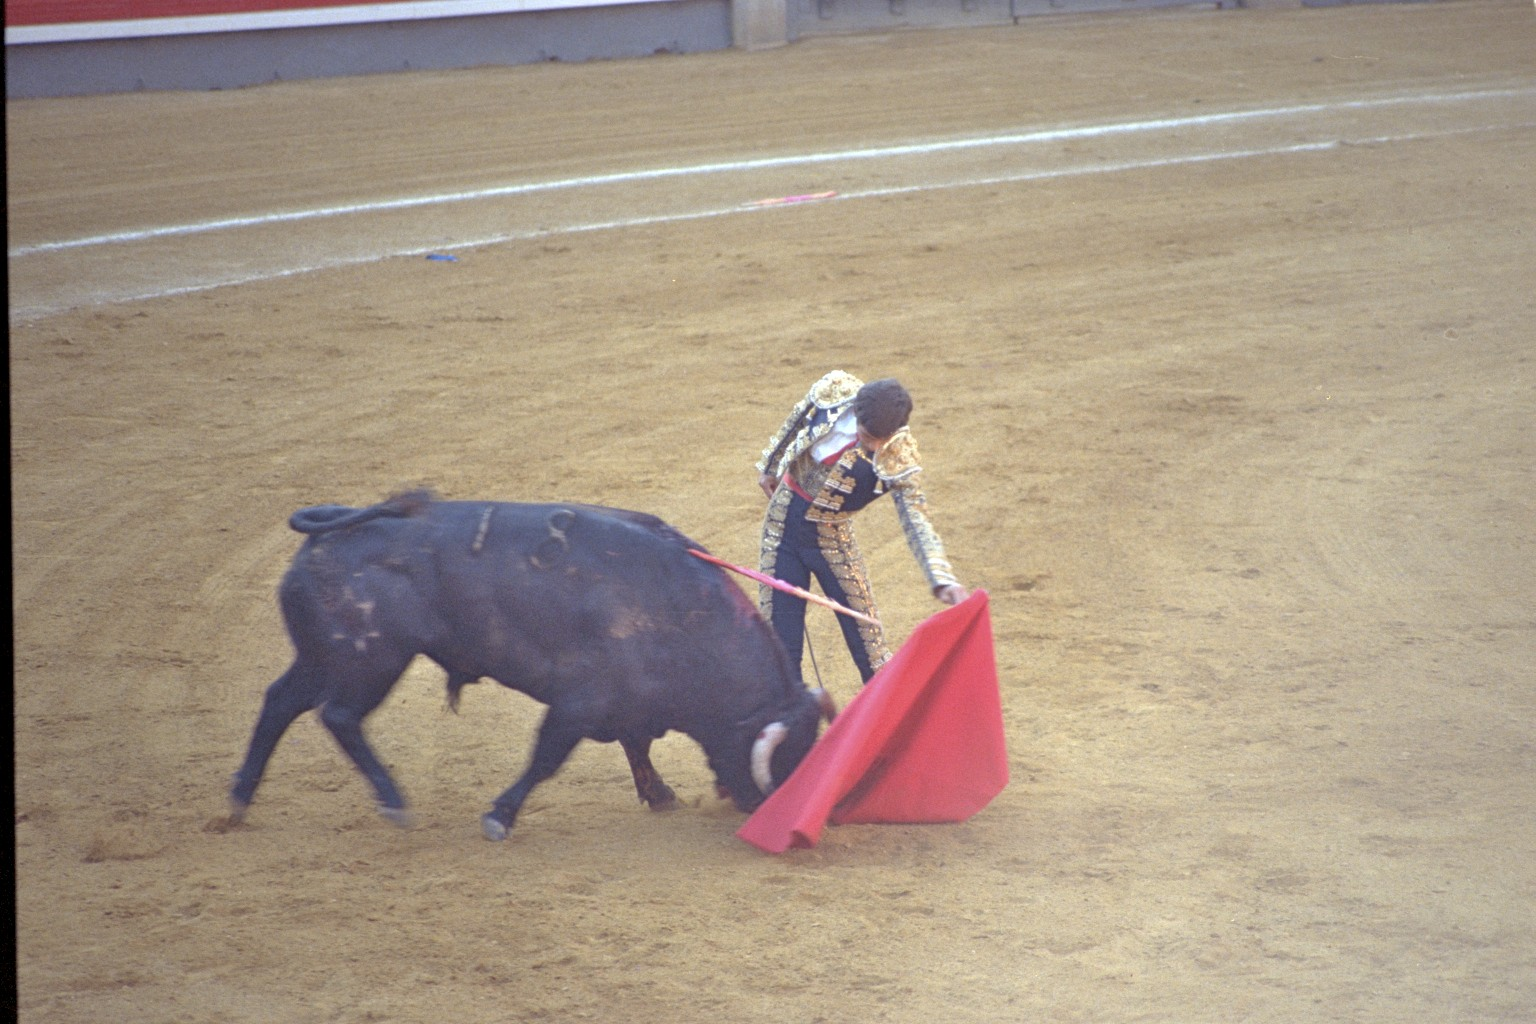 Plaza de Toros, Madrid 2